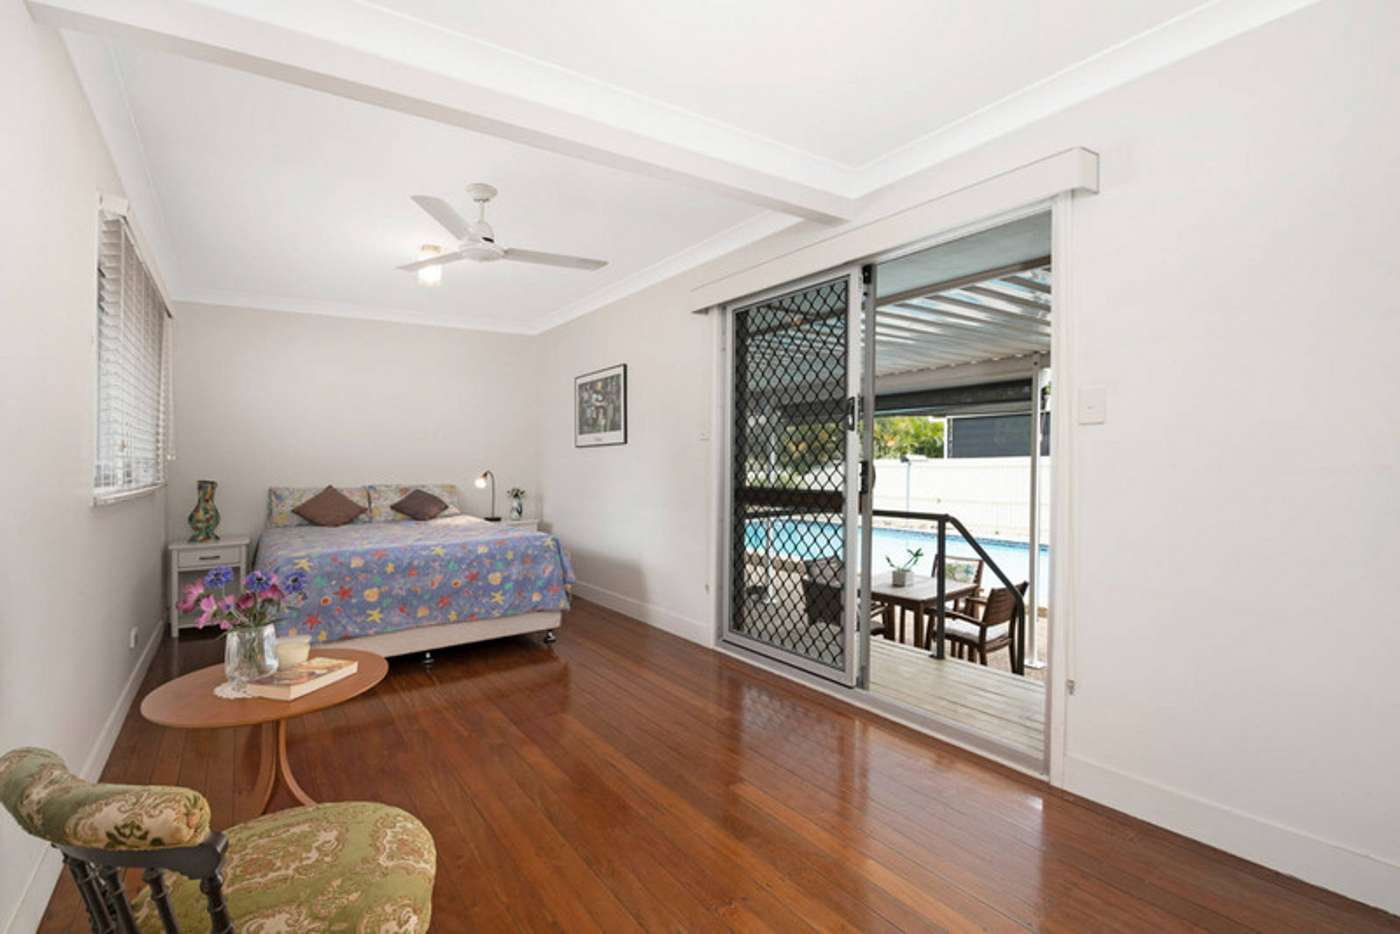 Sixth view of Homely house listing, 41 Orient Road, Yeronga QLD 4104